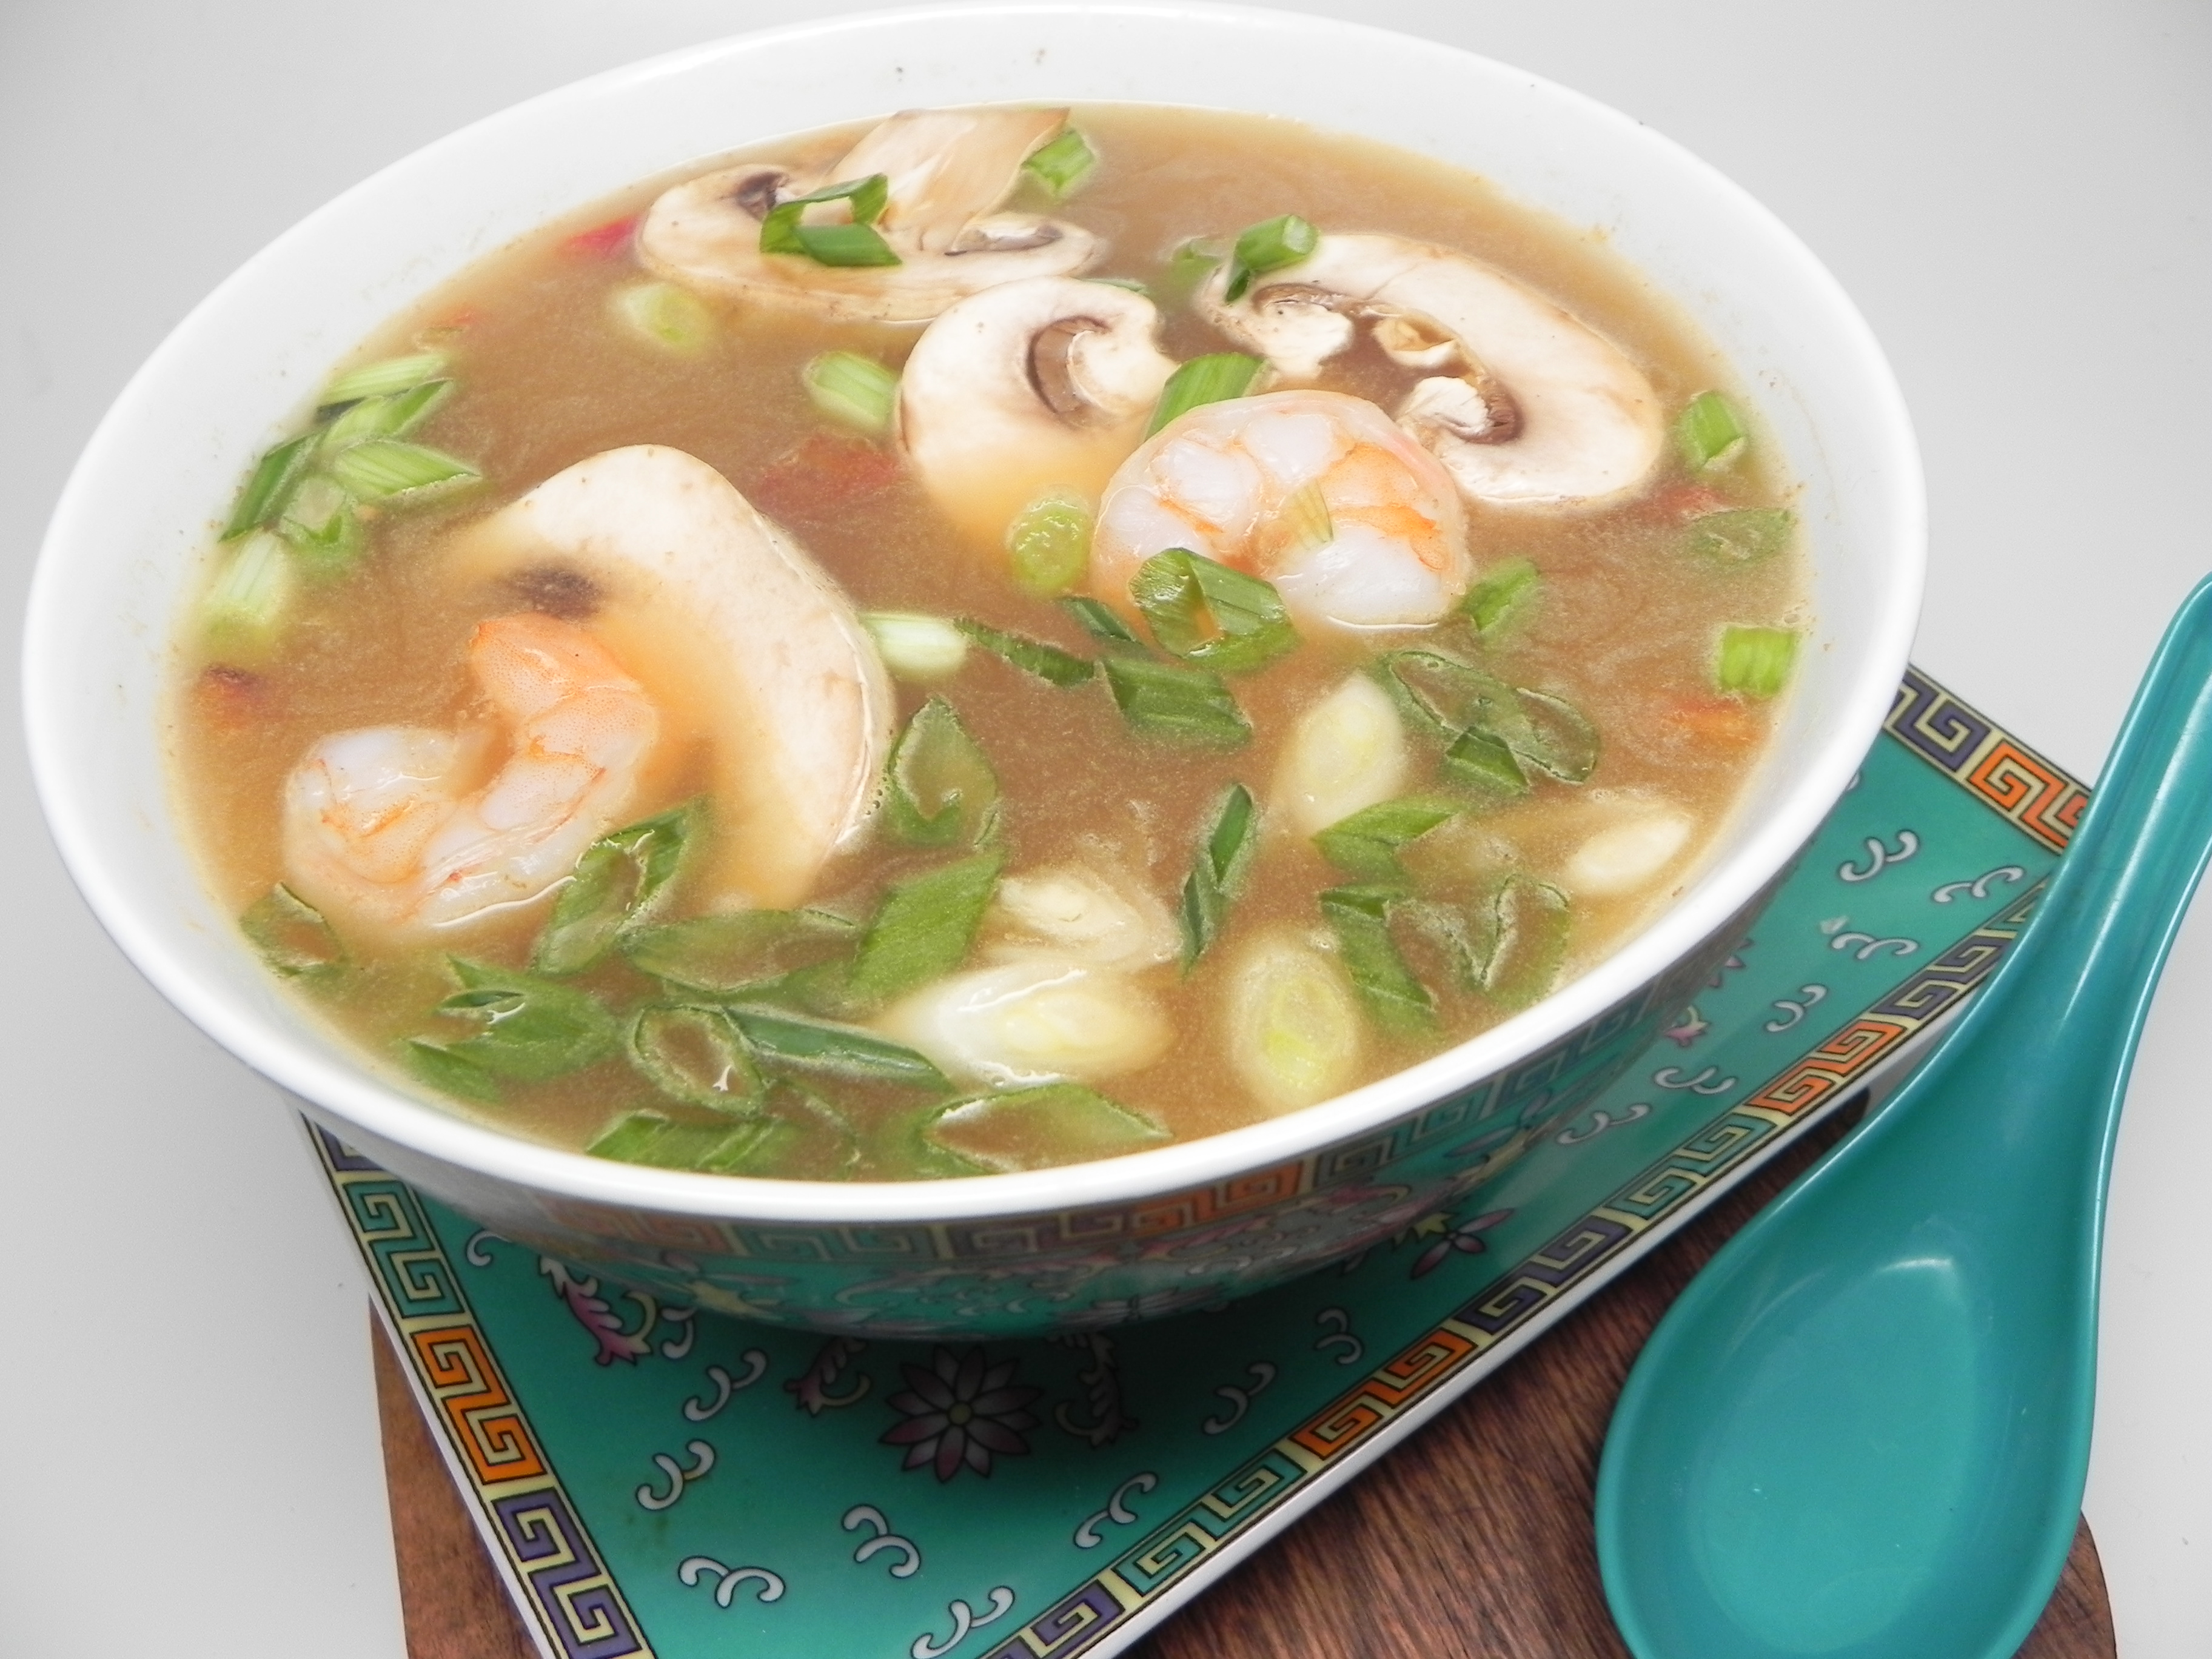 """Ready in 50 minutes, this homemade tom yum soup gets extra flavor from boiled shell-on shrimp and plenty of heat from Thai chile peppers. """"This homemade hot and sour soup is easier than most recipes you will find,"""" says Nader. """"I have simplified a sometimes complex recipe for those like me who can have a hard time finding some of the original ingredients. This is my favorite recipe."""""""